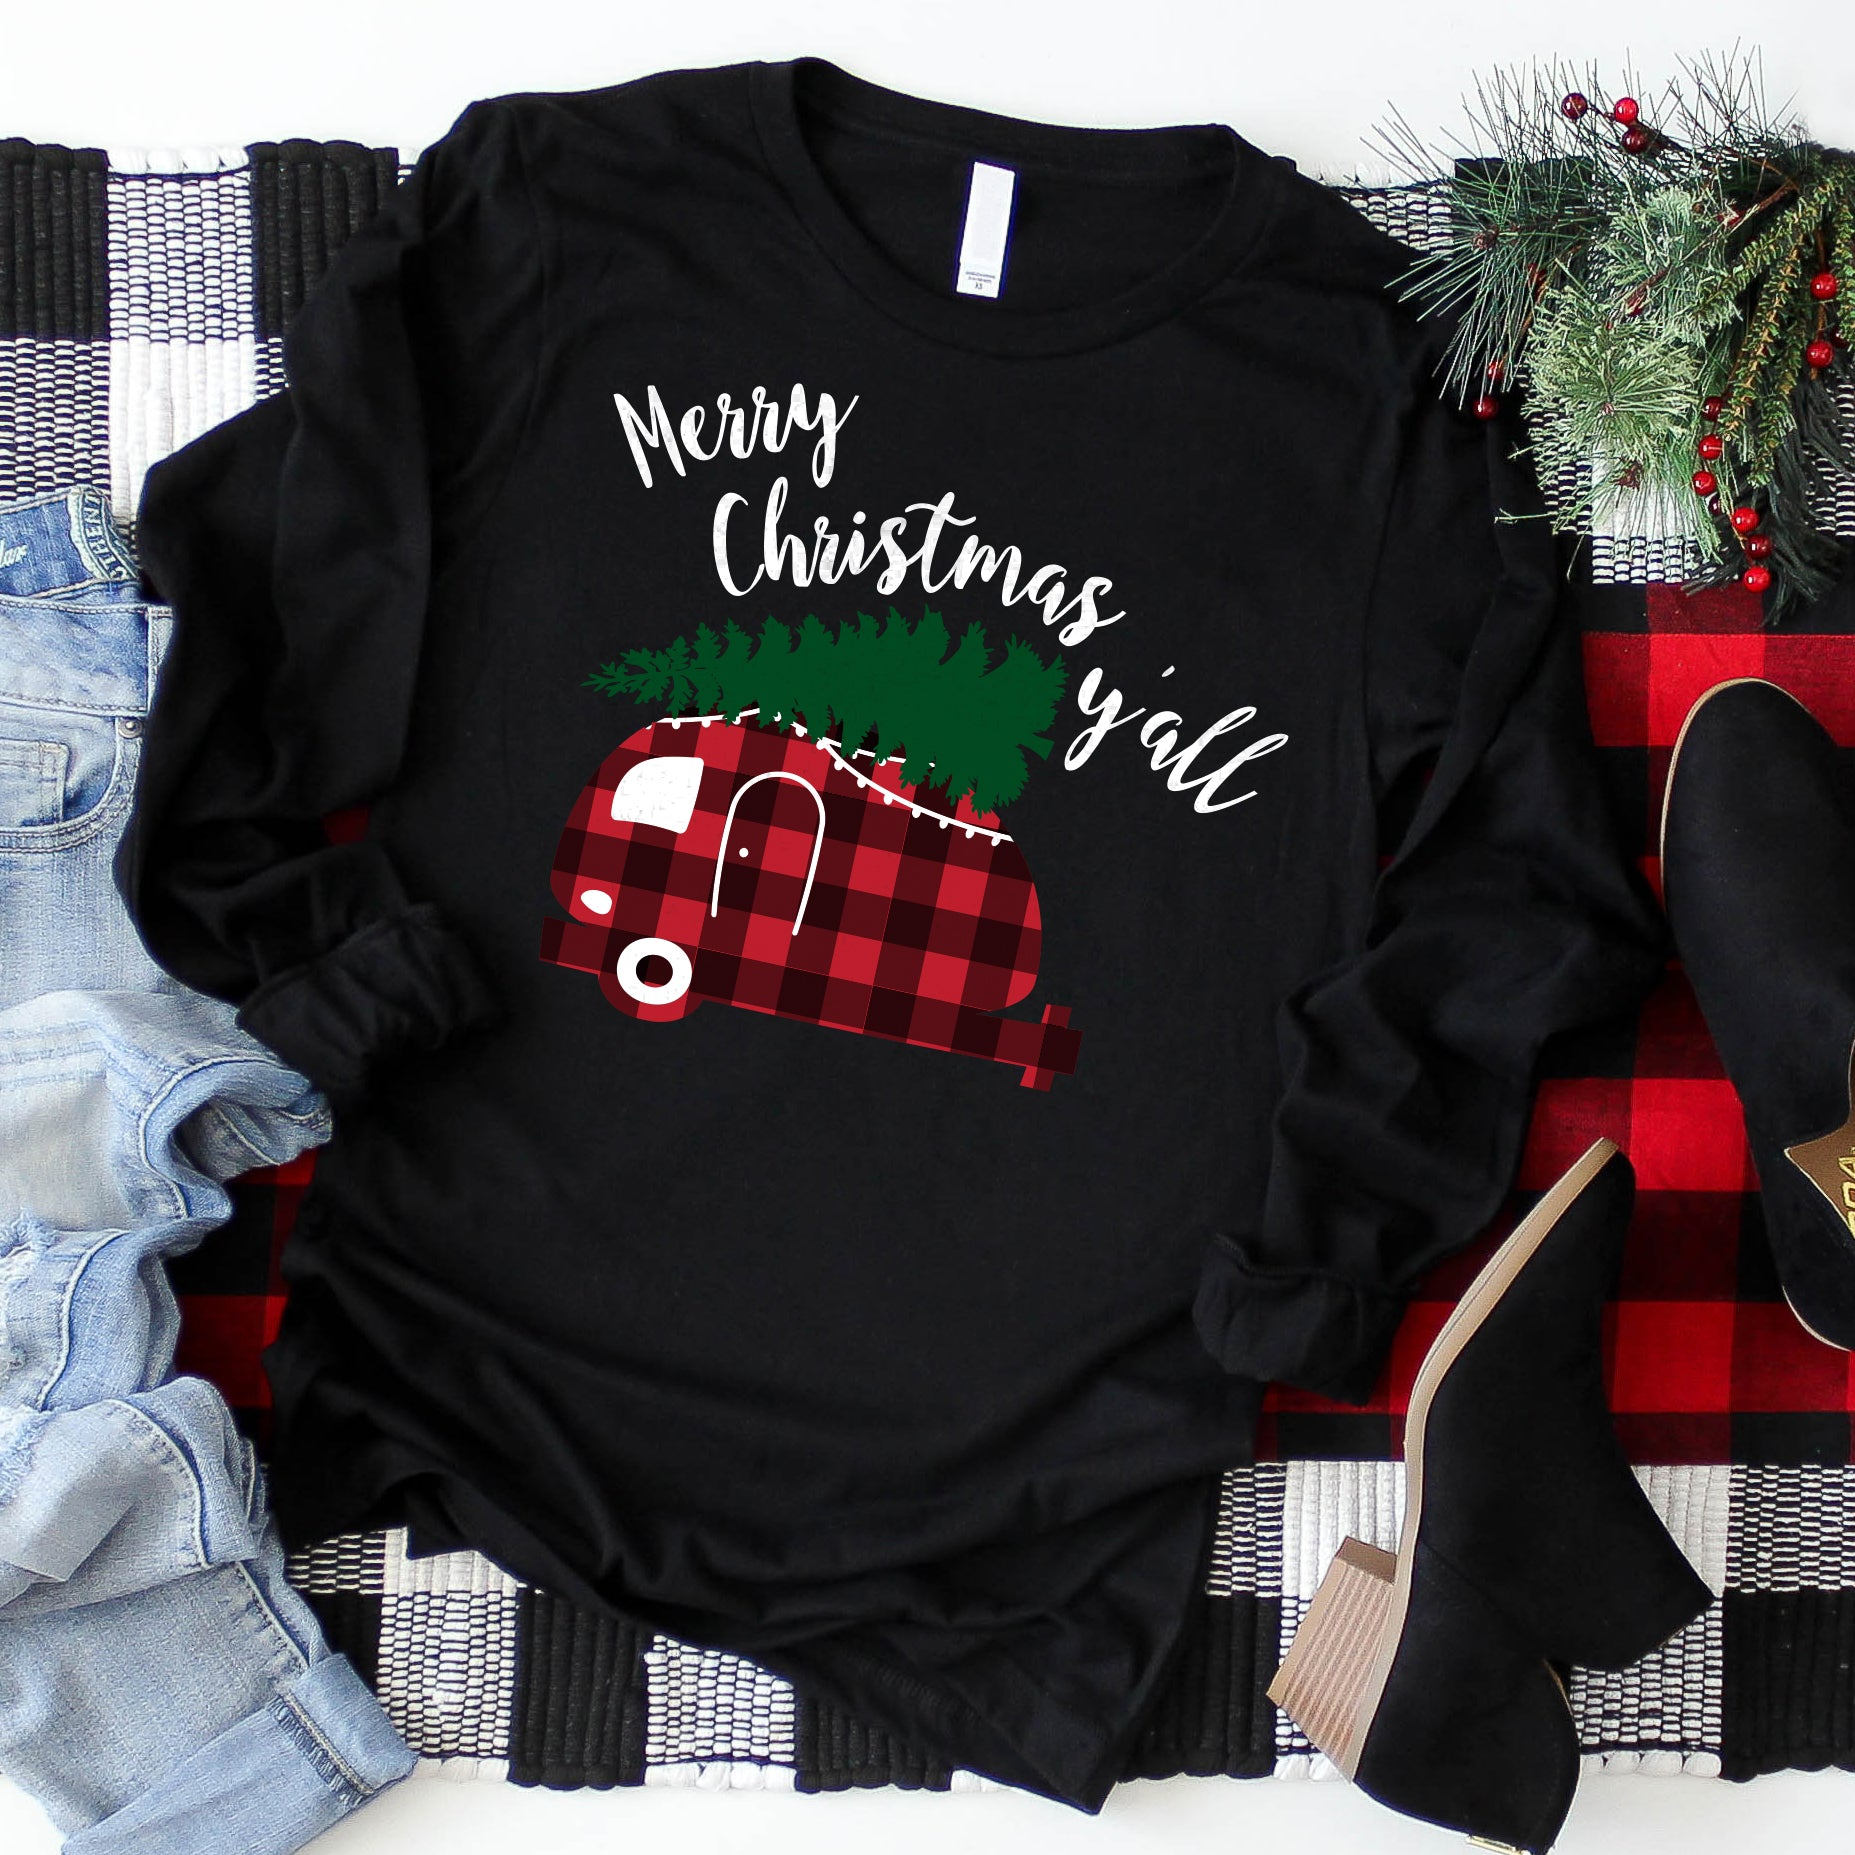 Merry Christmas Y'all Shirt Christmas Camper Shirt Cute Long Sleeve Christmas Shirt Christmas Outfit Red Plaid Shirt Christmas Tree on Car Shirt